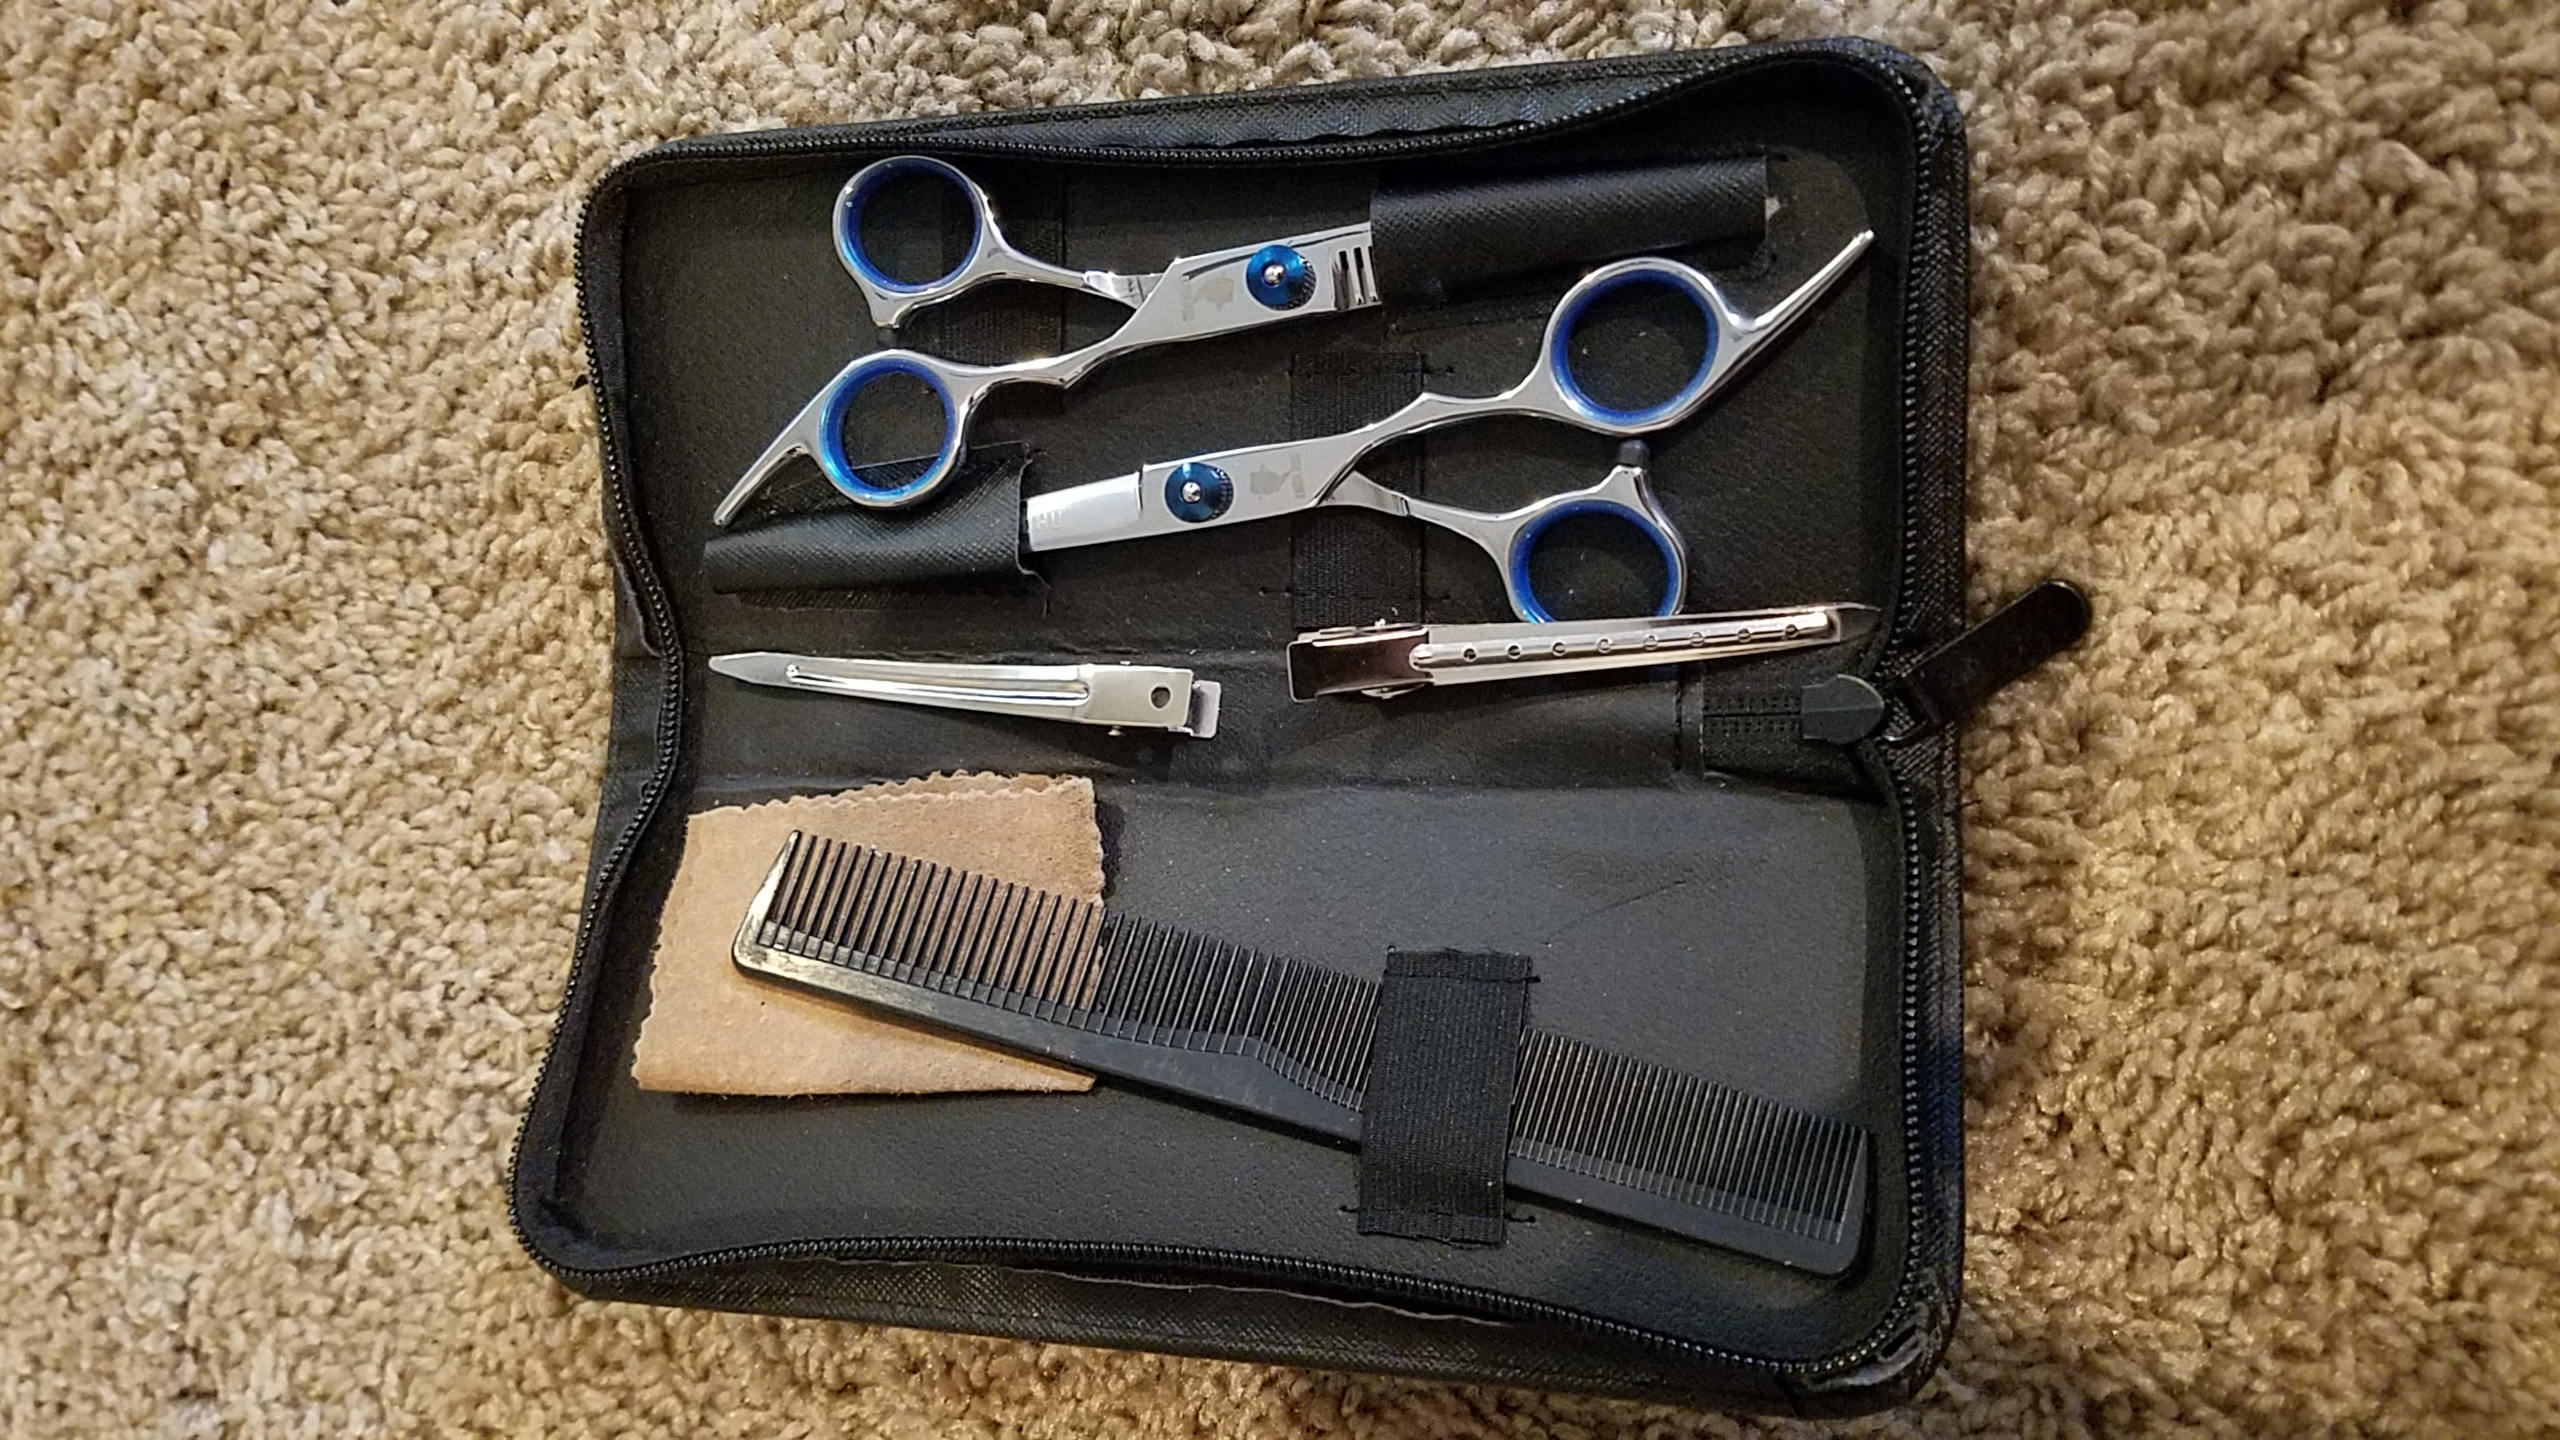 The case is sloppy and cheap, but the scissors have a high quality feel!